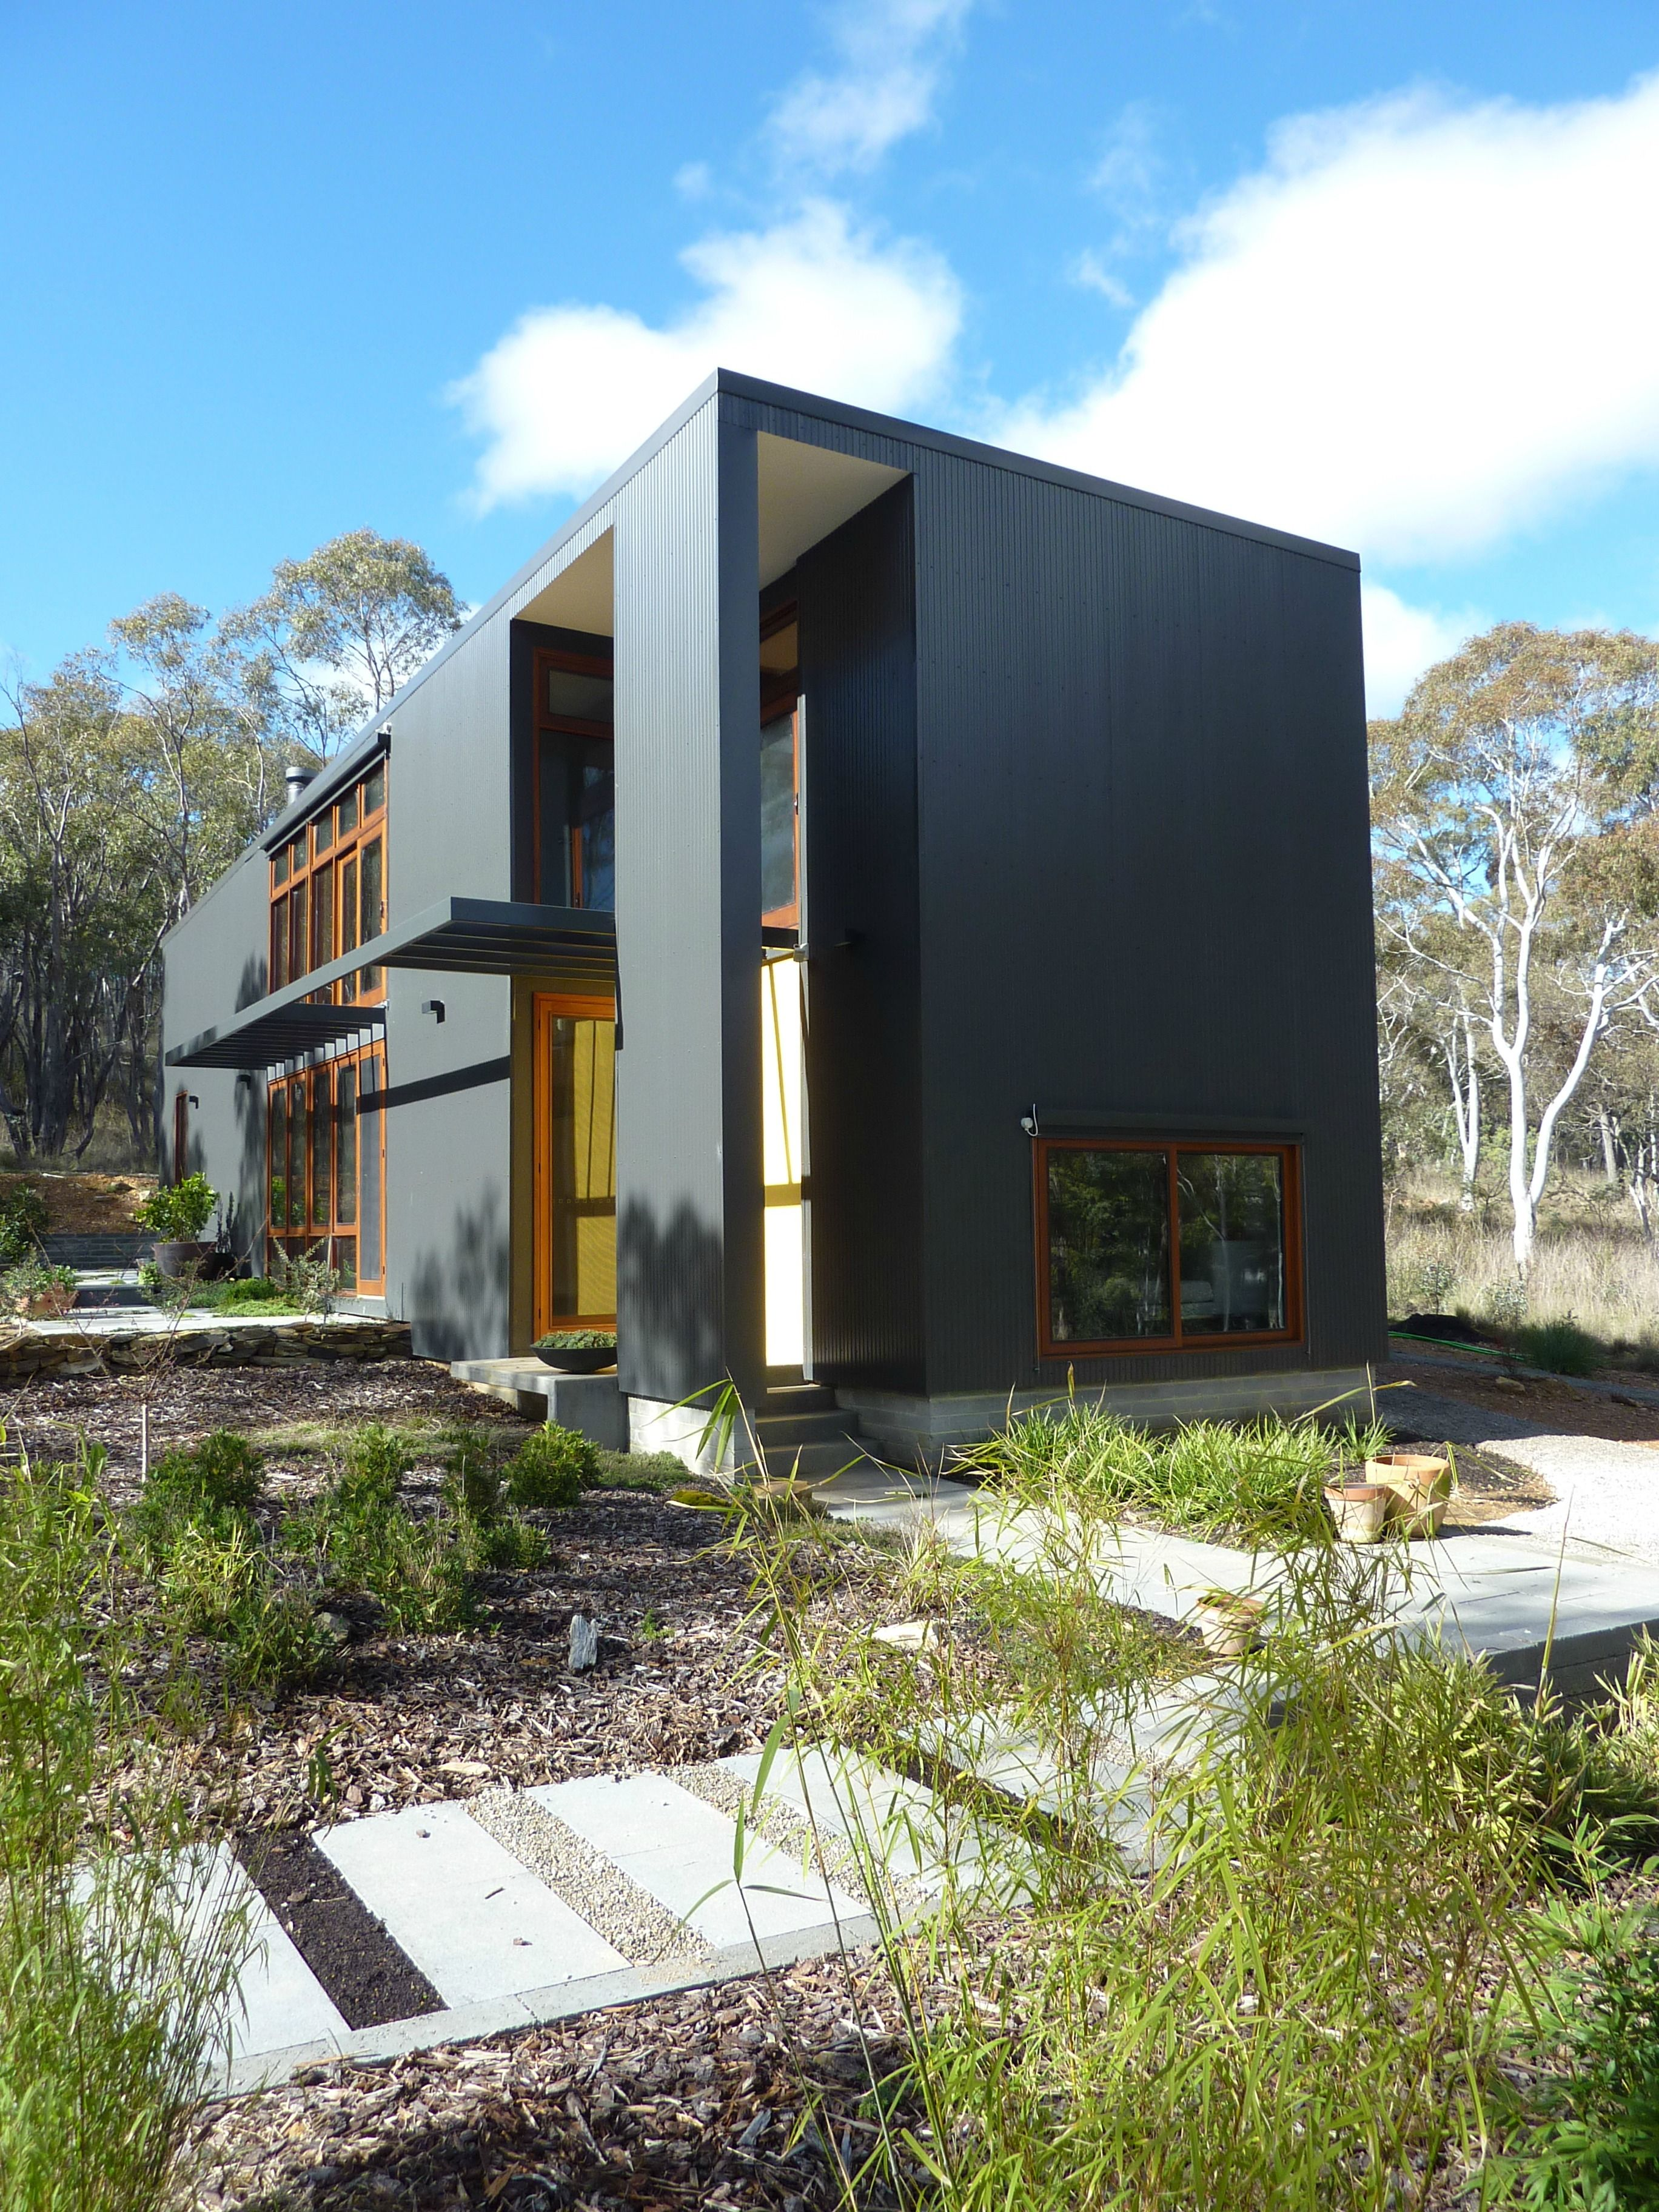 Rob henry architect box houses architects and metal cladding